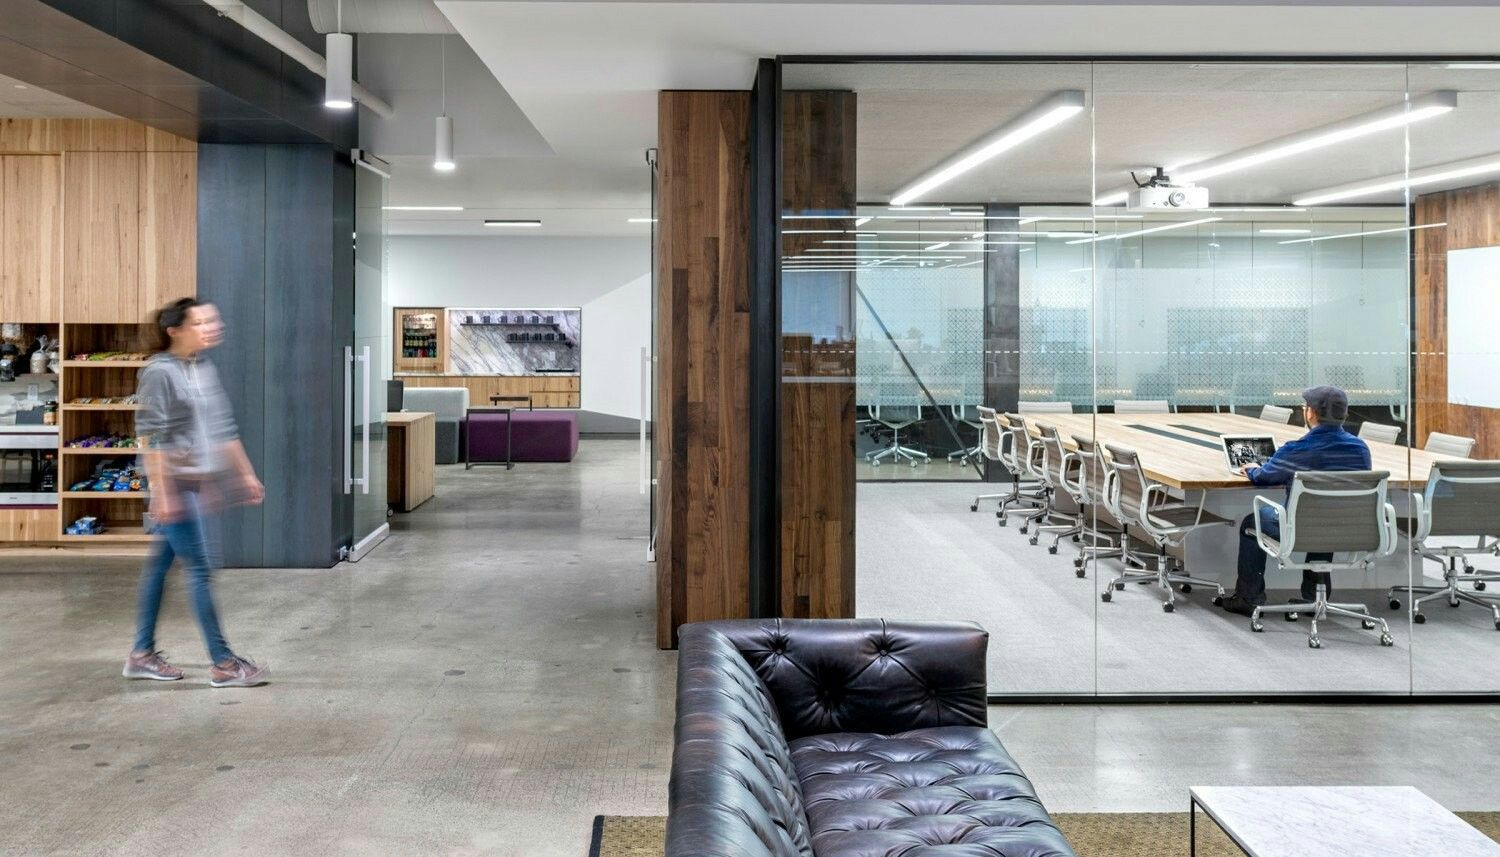 office studio design. Uber Office Design Studio. Explore Workplace Design, Space And More! Studio